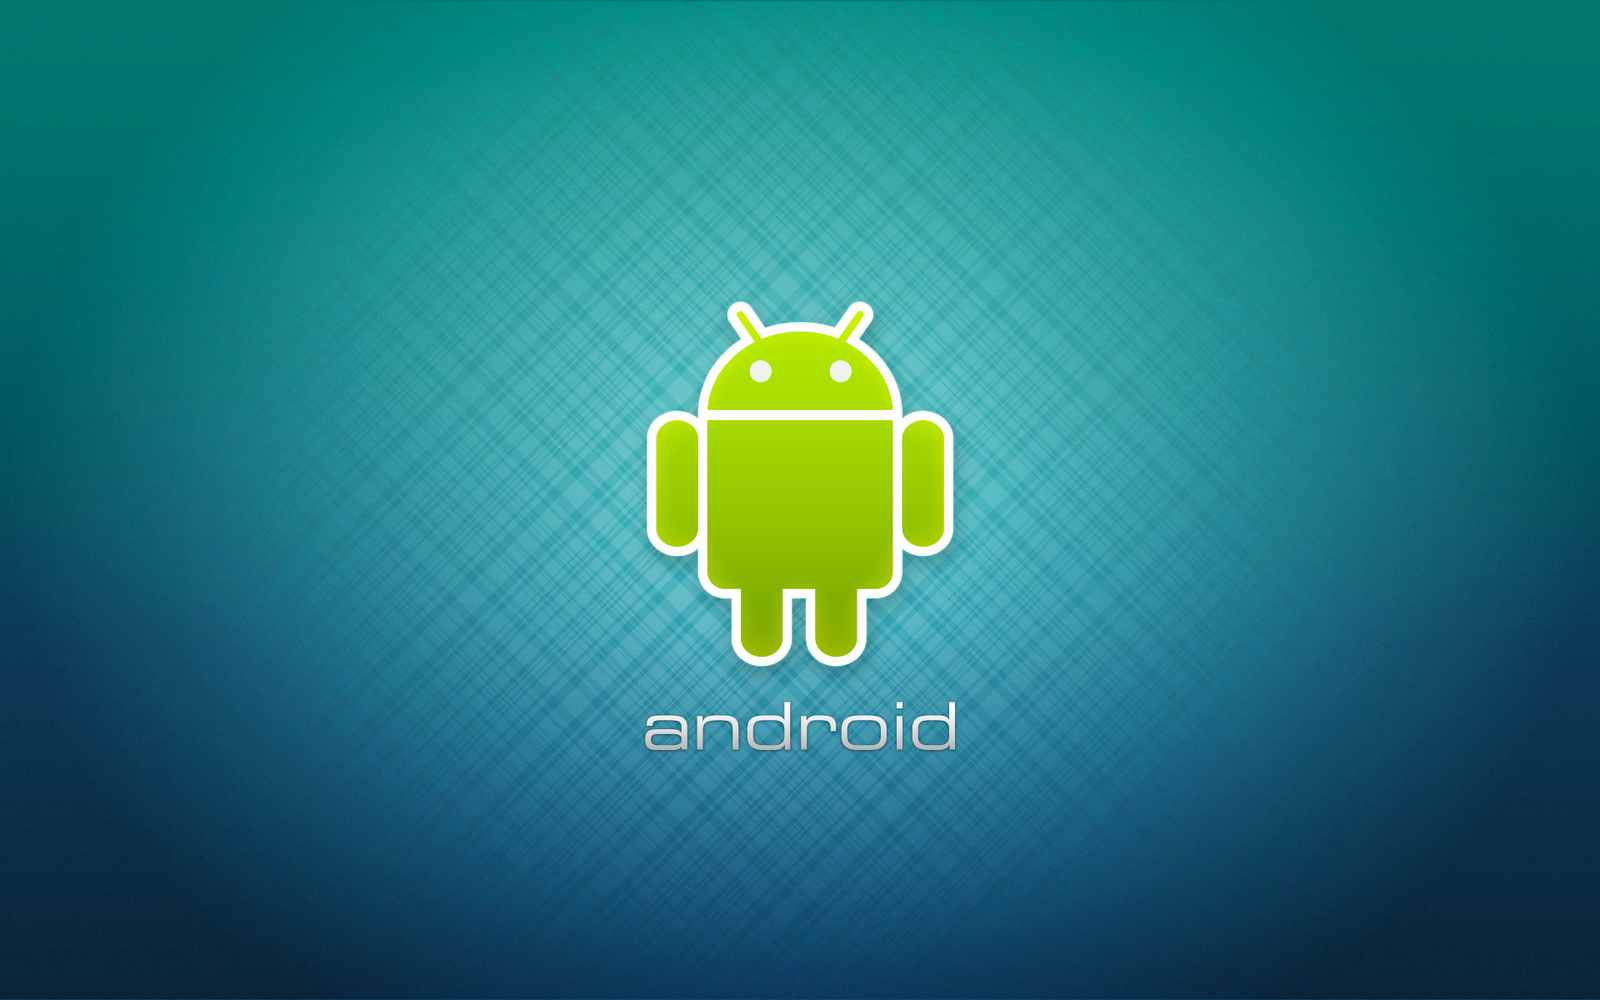 Wallpaper Android Tablet